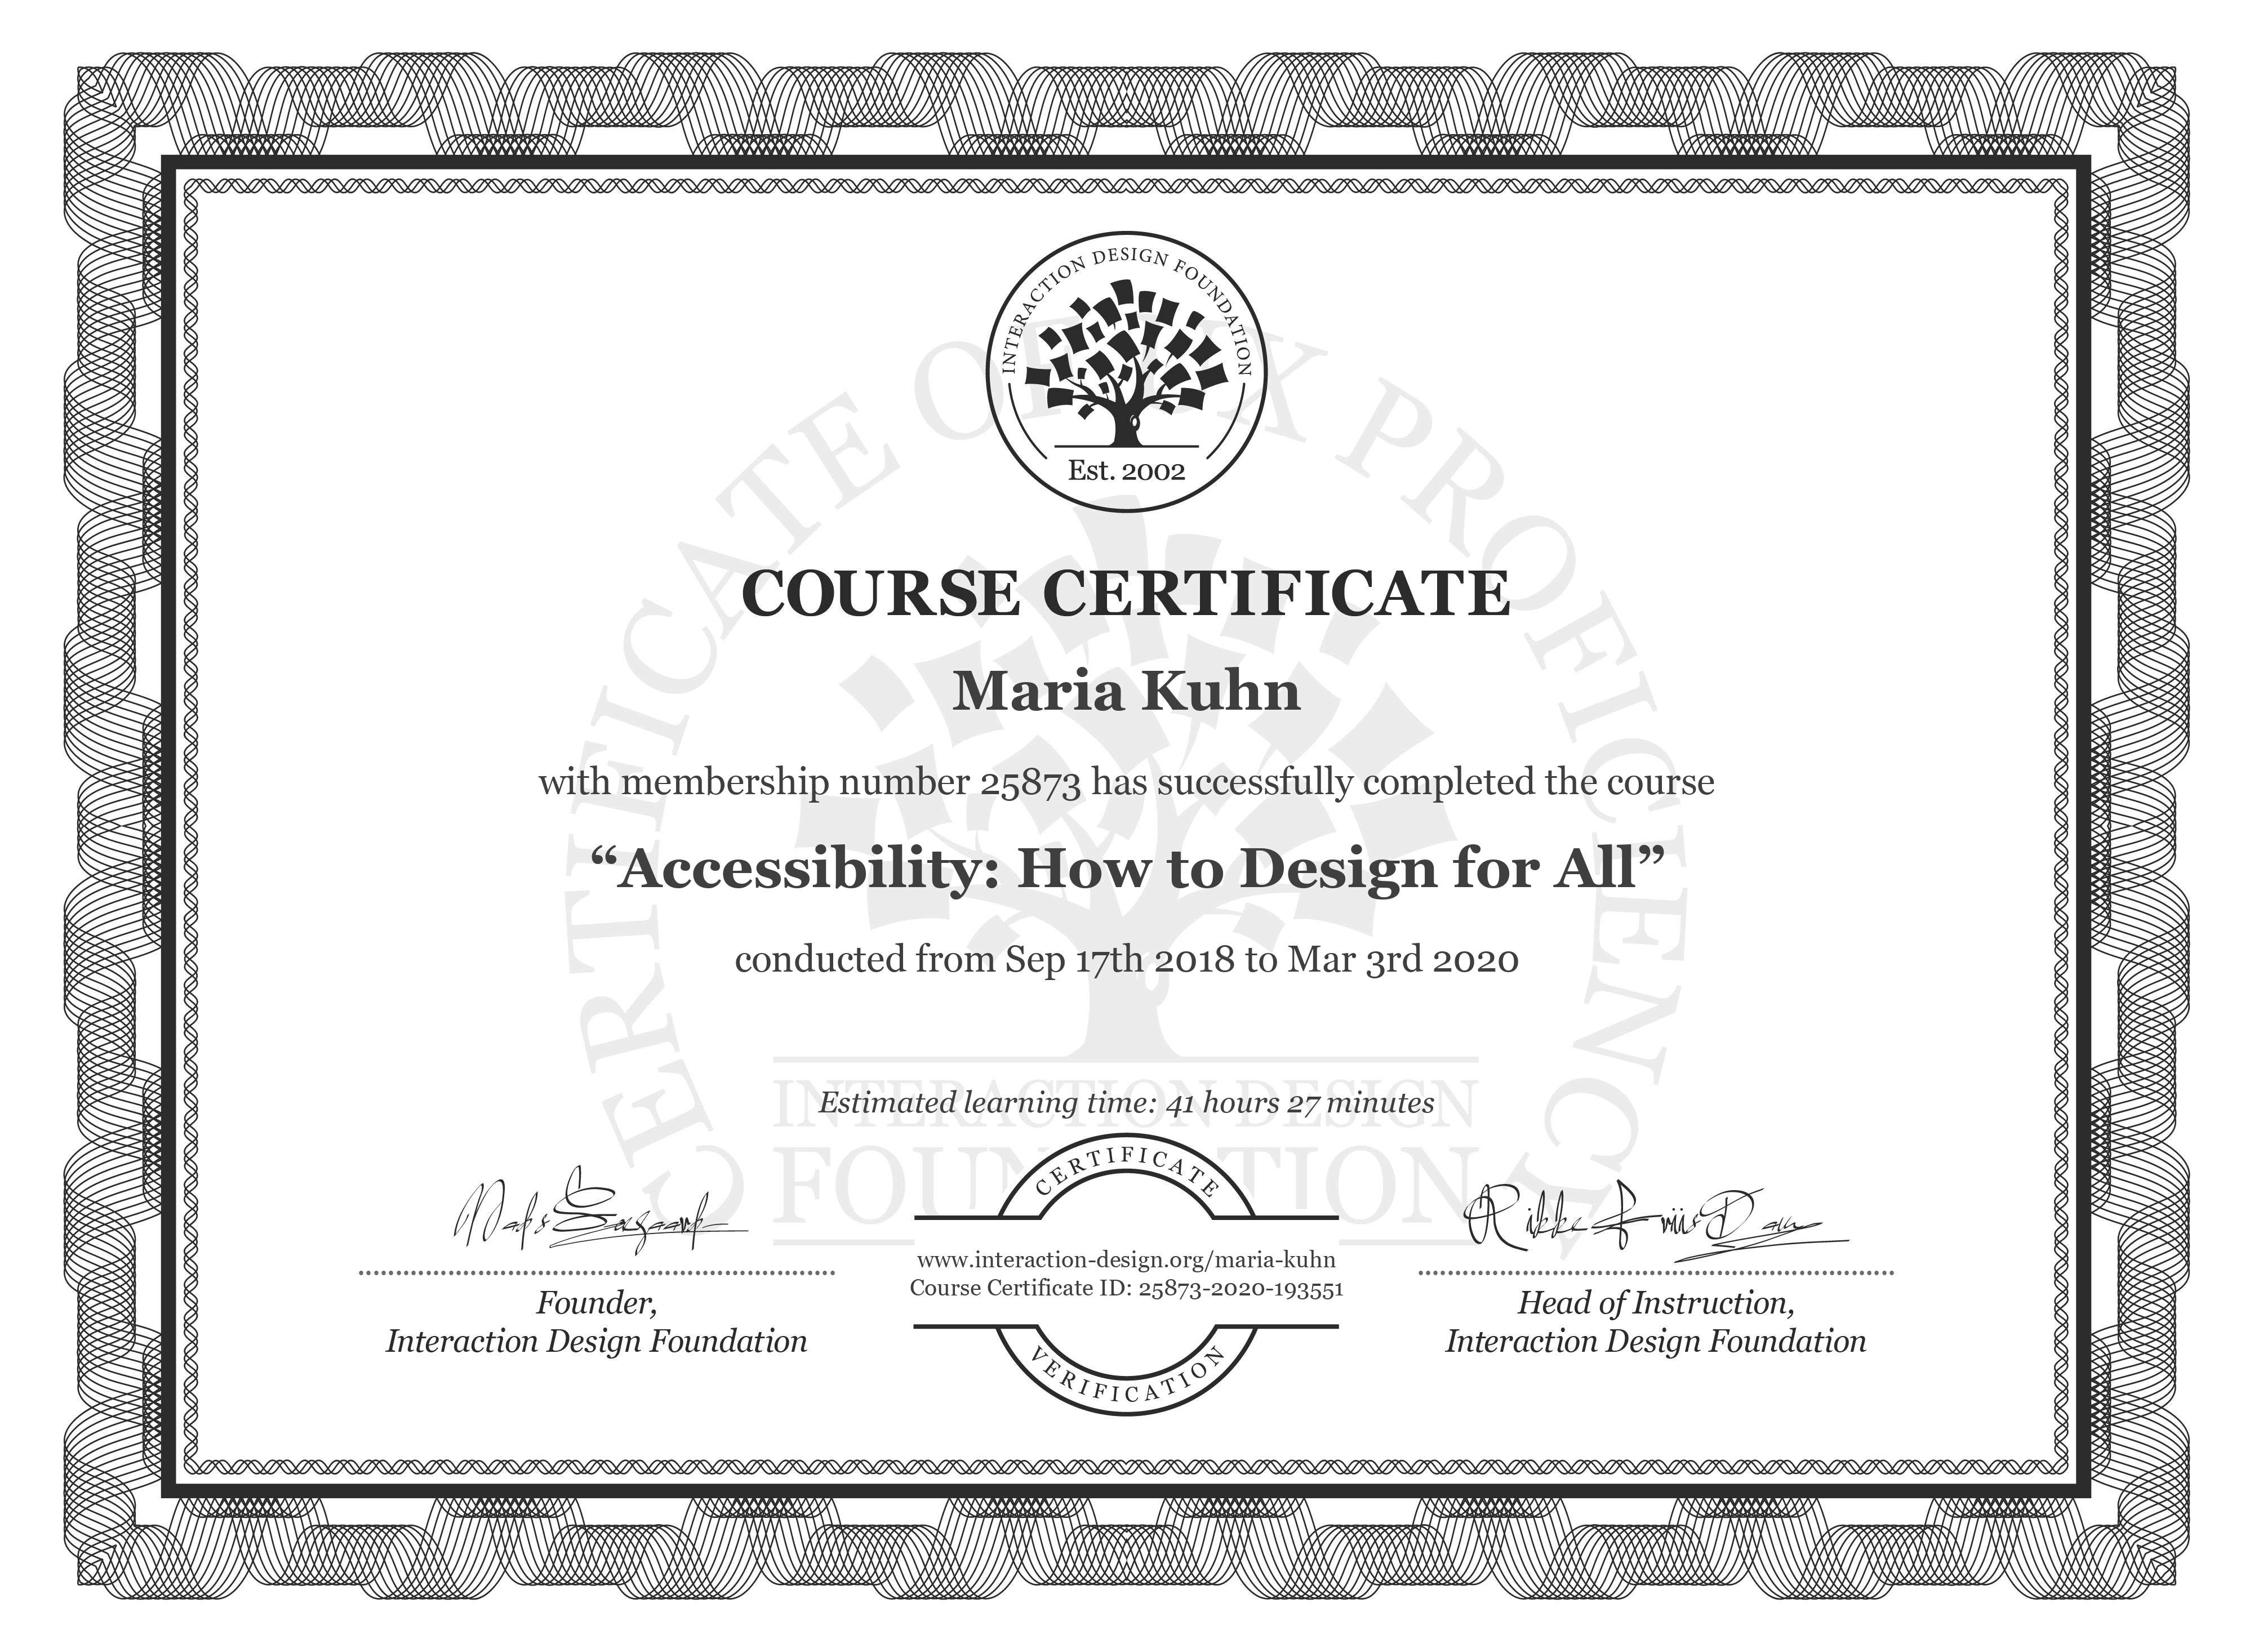 Maria Kuhn's Course Certificate: Accessibility: How to Design for All